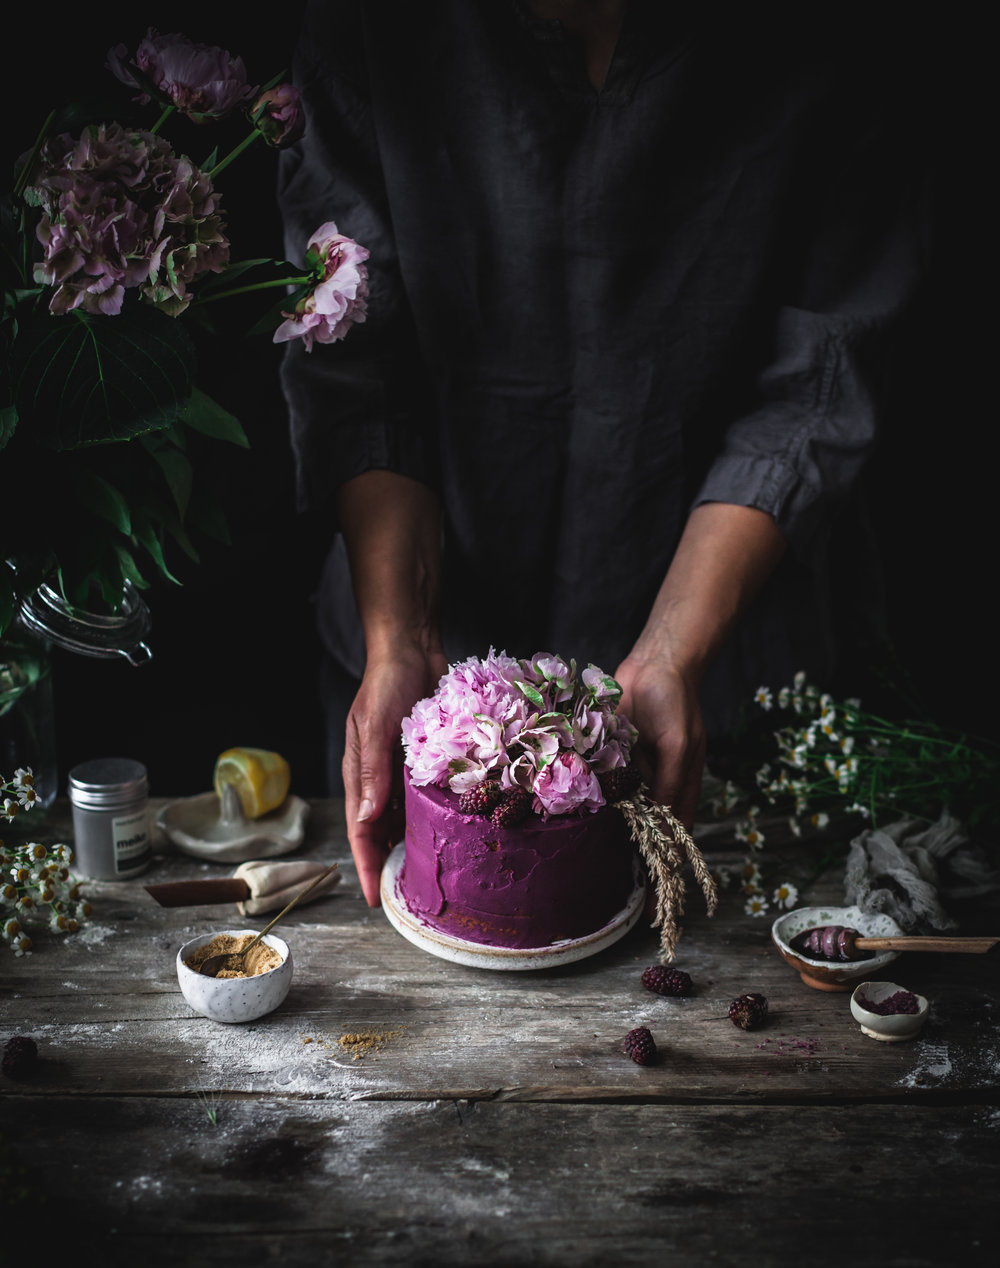 purple potatoes and white chocolate vegan cake